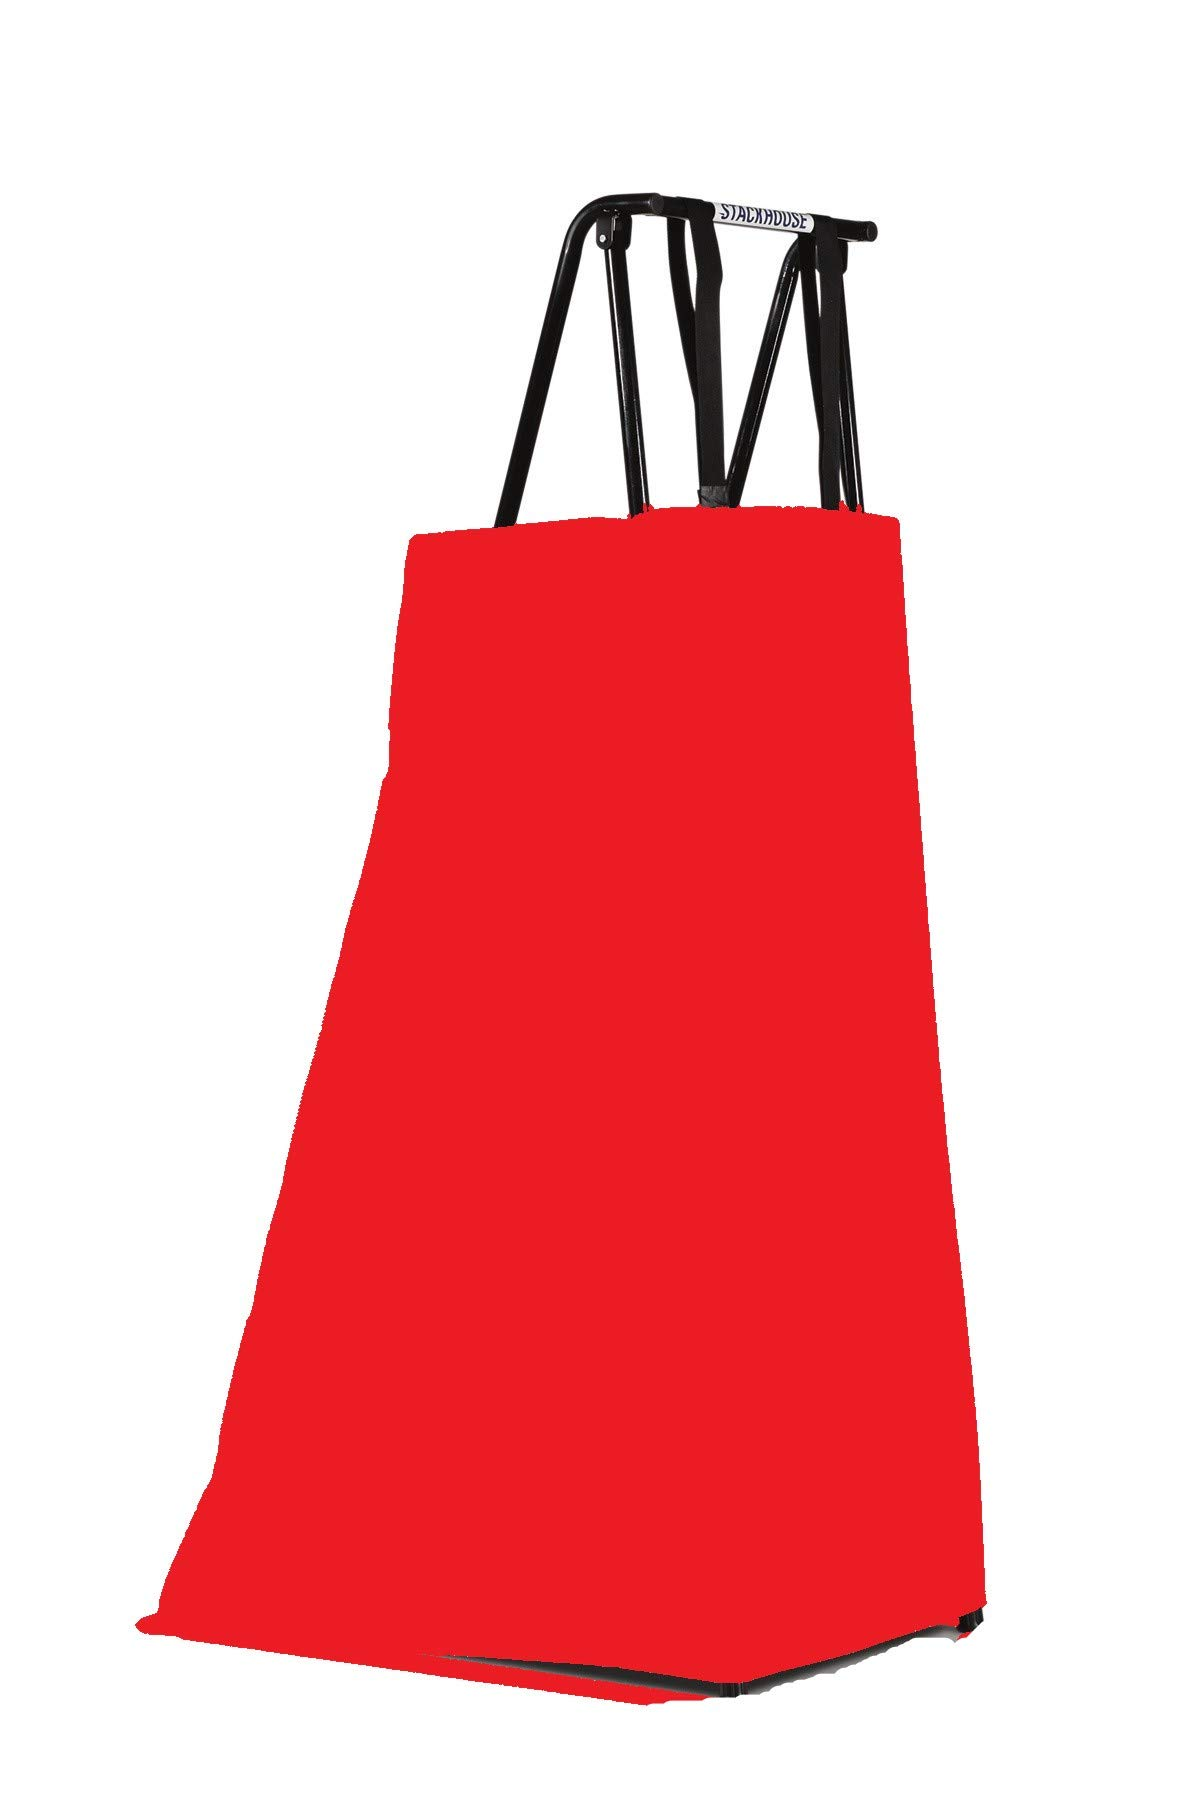 Eastern Atlantic New - Volleyball Referee Stand Protective Padding (Bright Red)